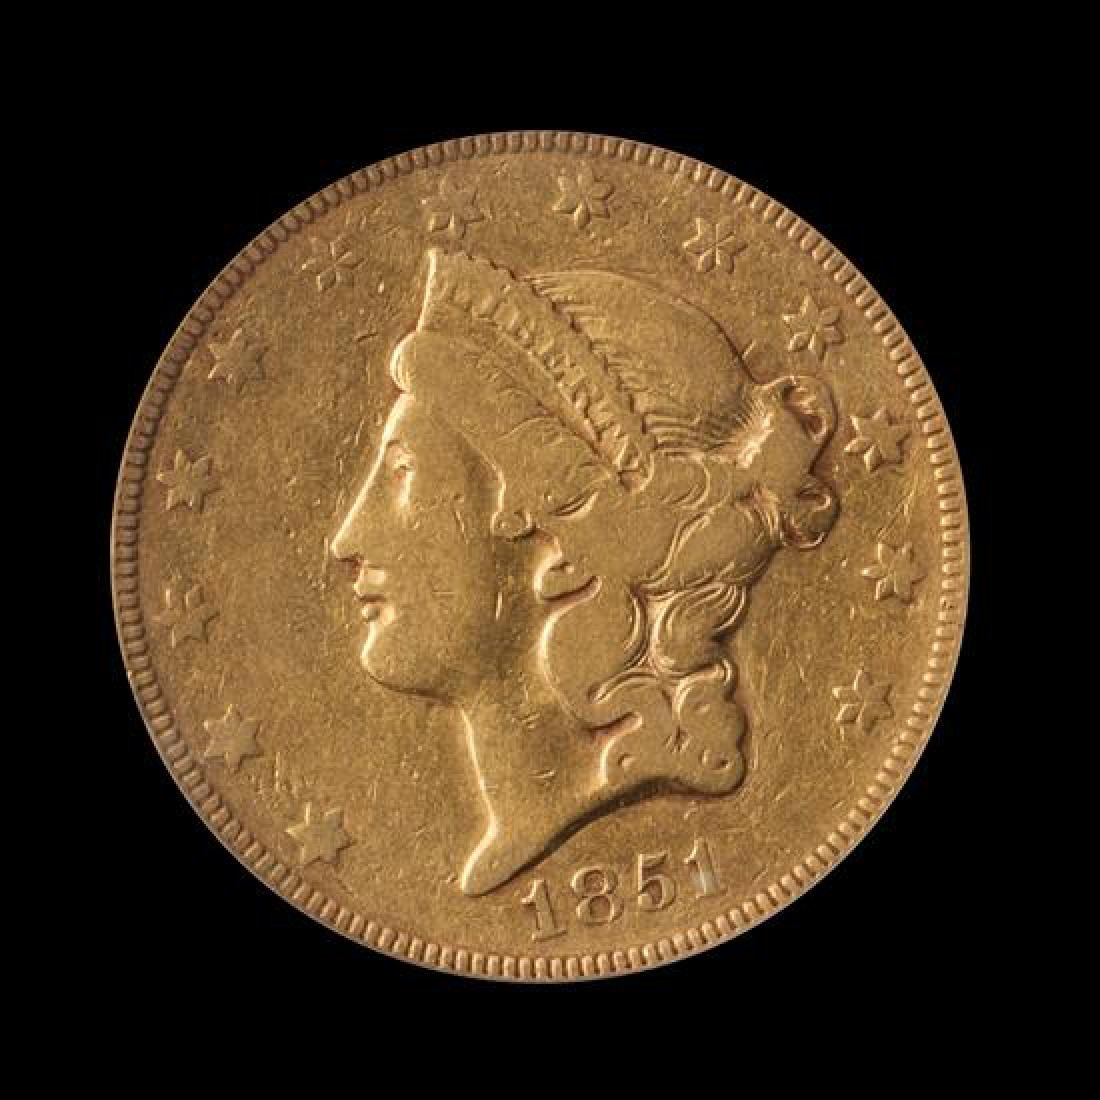 A United States 1851 Liberty Head $20 Gold Coin